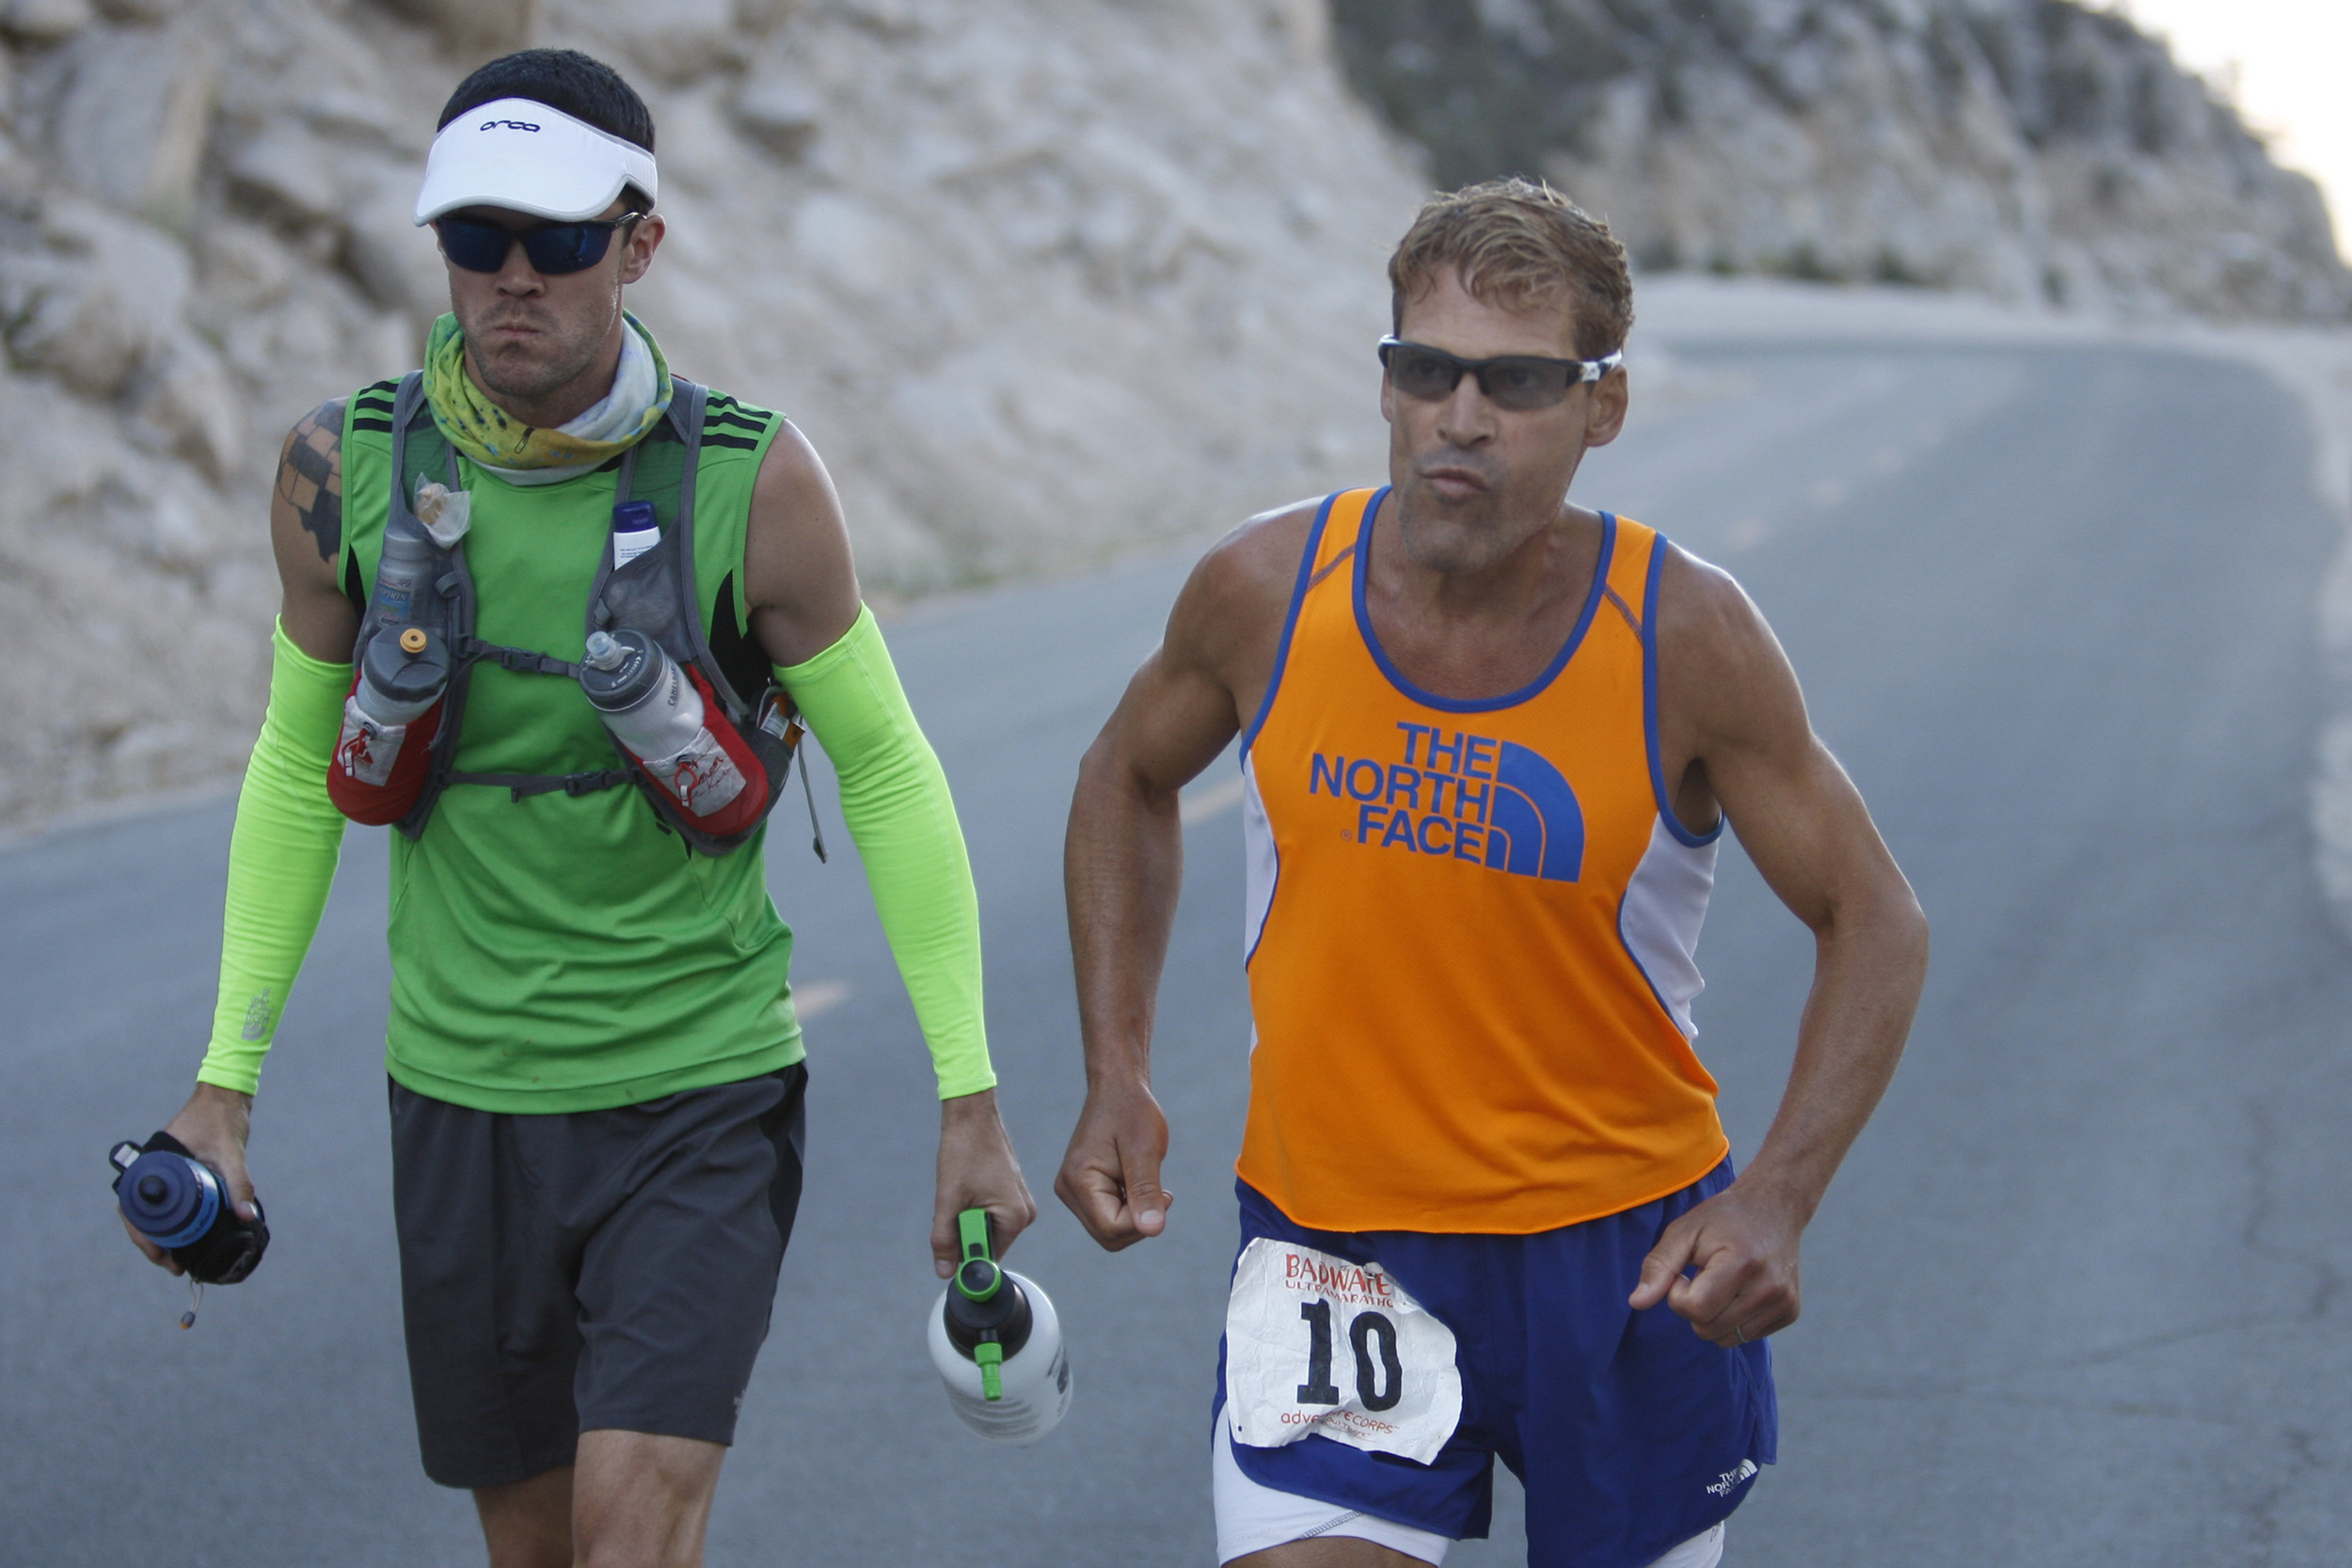 Get familiar with the Badwater Ultramarathon, 'the world's toughest footrace' - AOL News